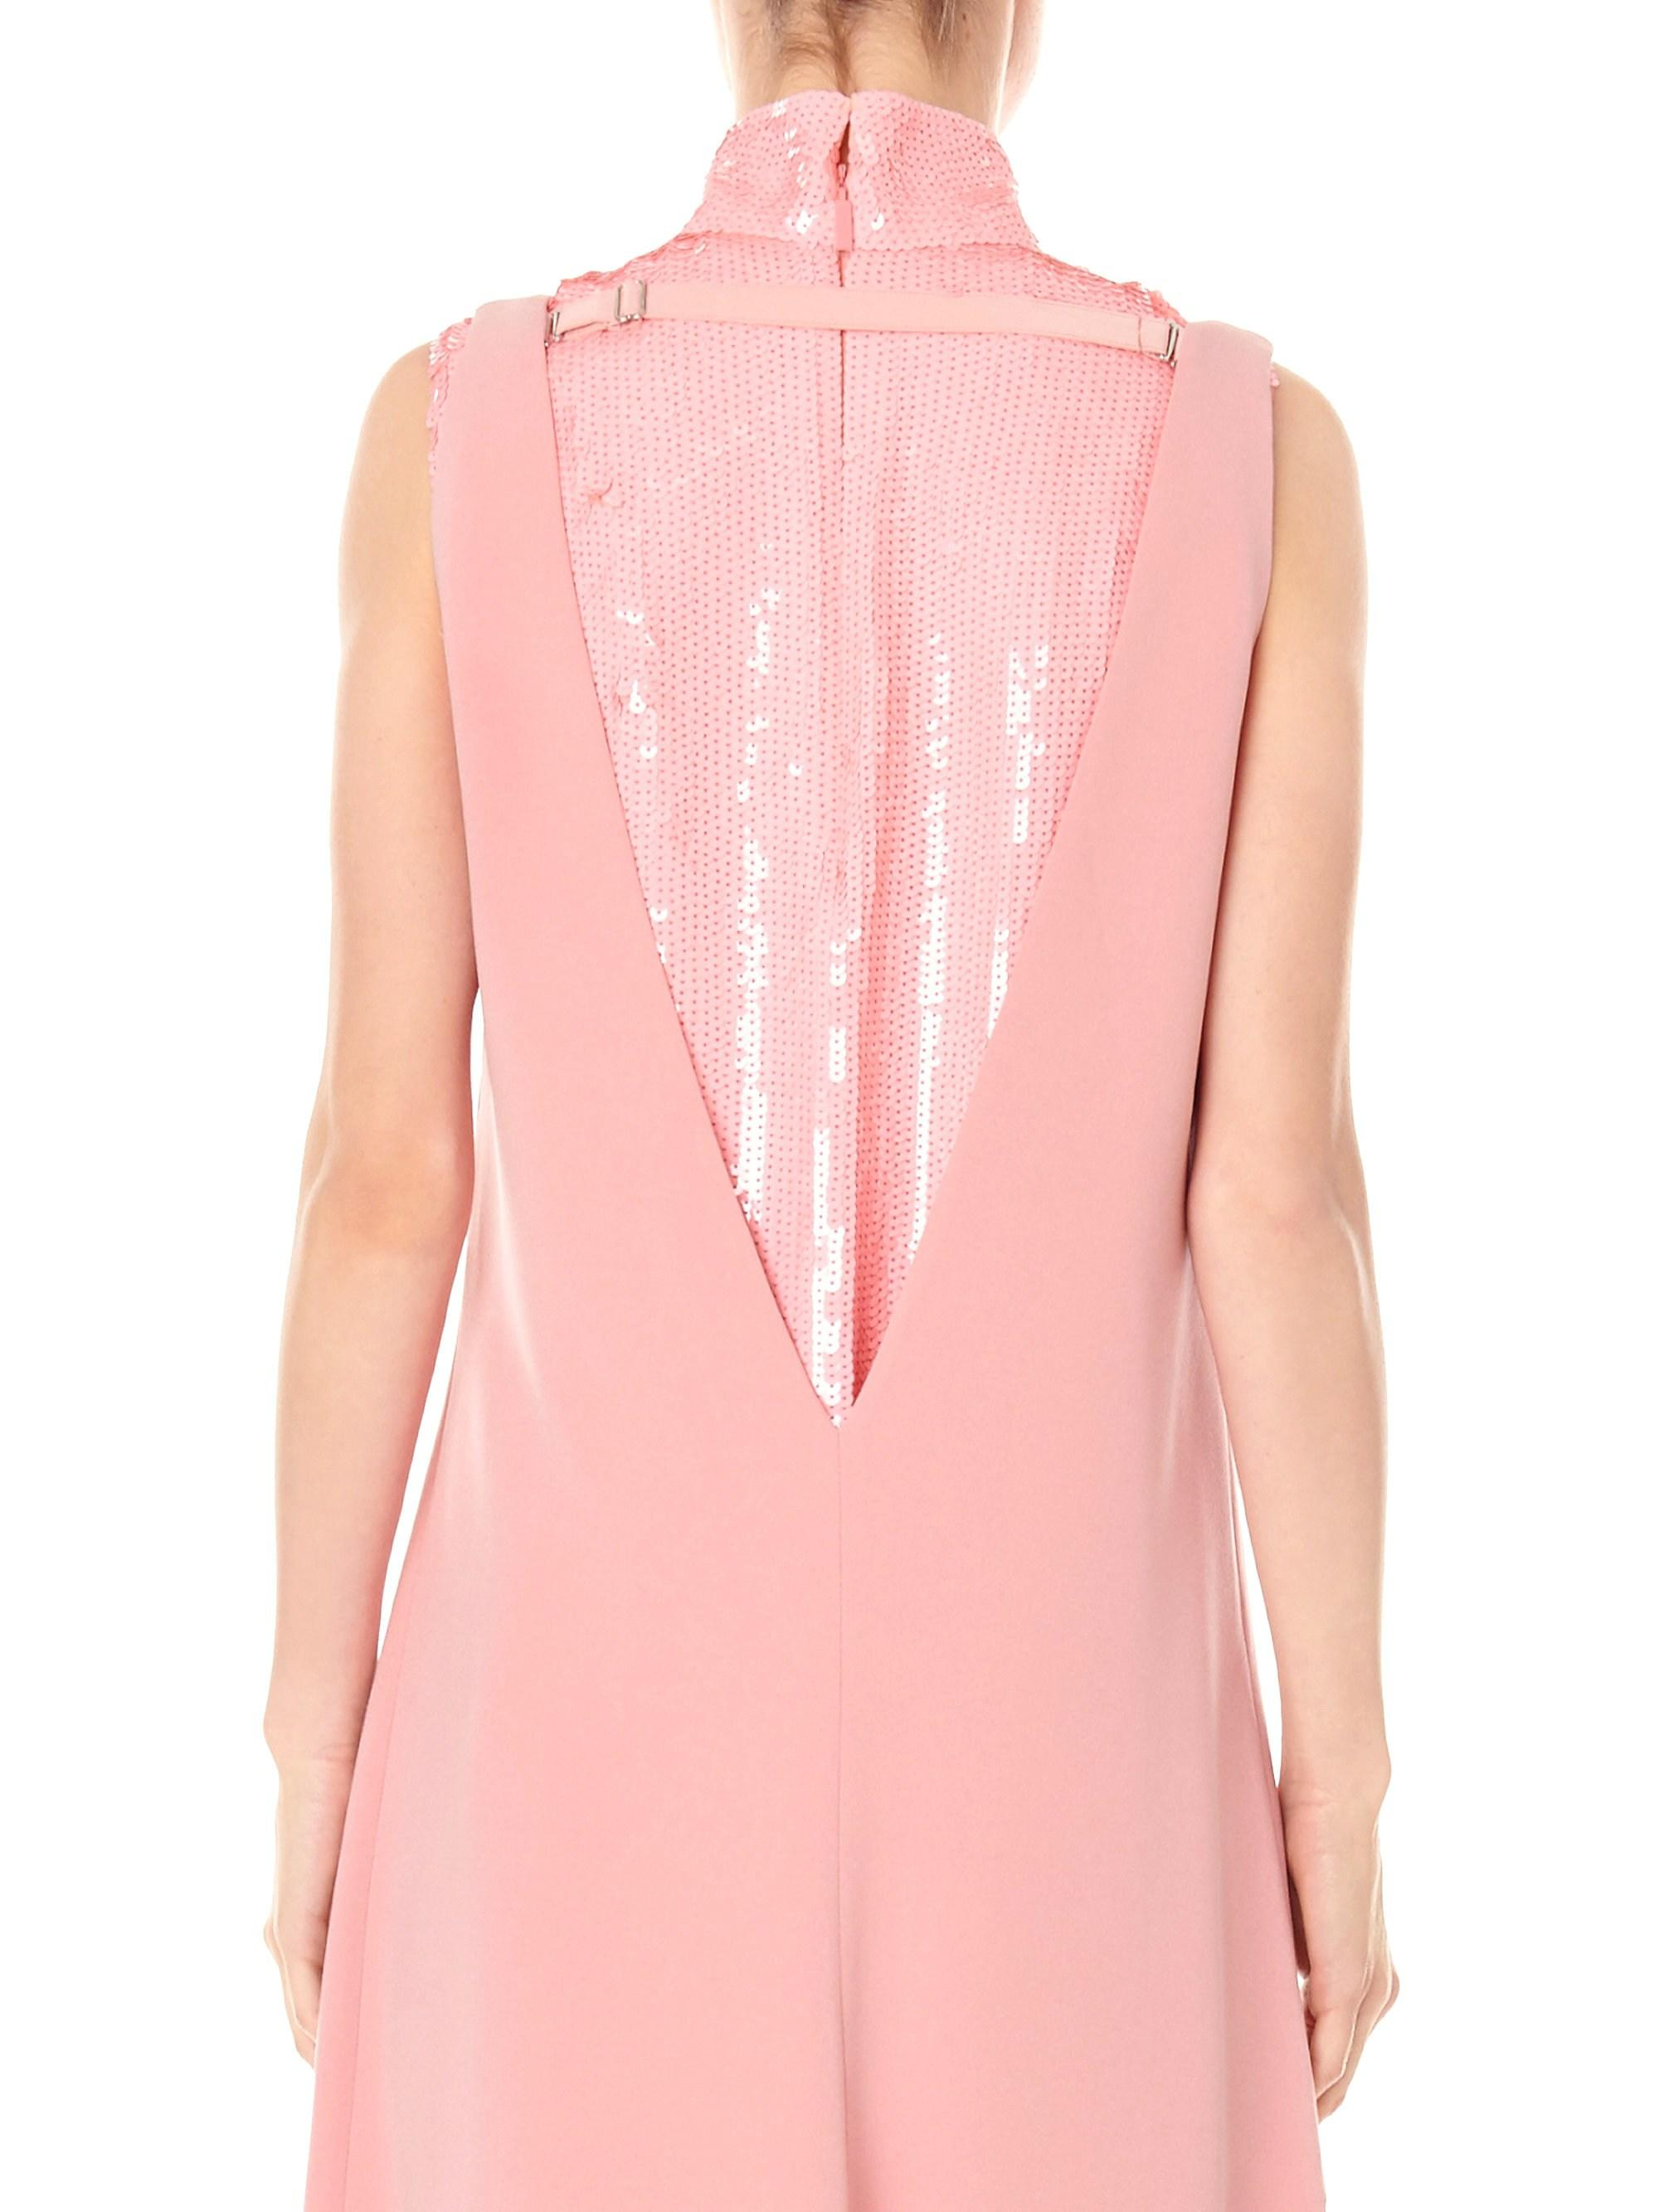 a709b346db83d8 Tibi Silk Sequin Turtleneck Shell Top in Pink - Lyst